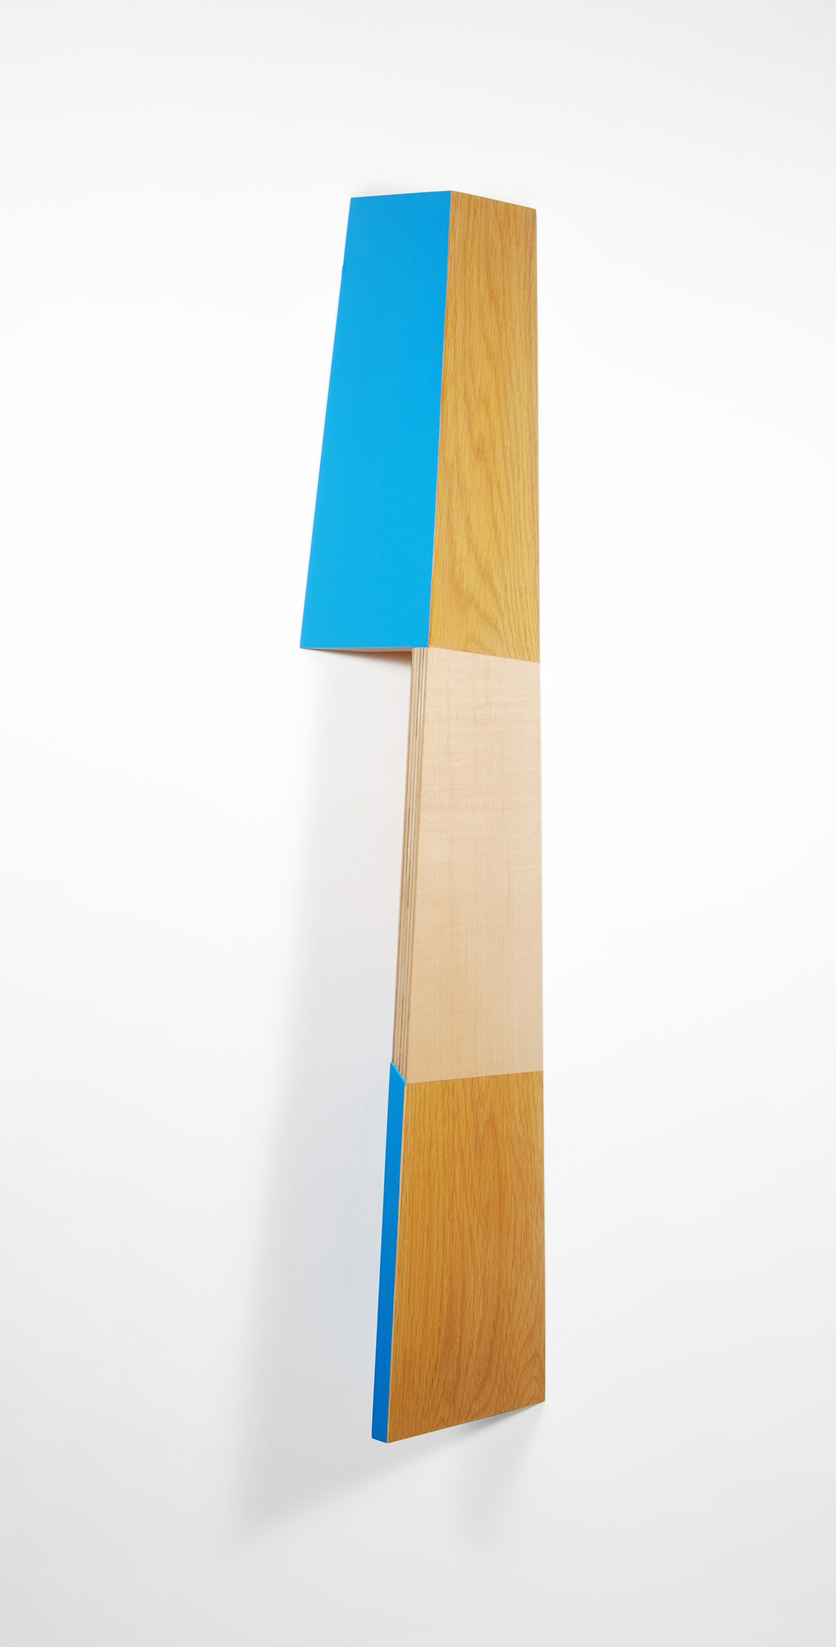 Richard Bottwin   Right Angle.2   2018  Maple veneer, white oak veneer, and acrylic paint on birch plywood  34 x 8.5 x 5 inches